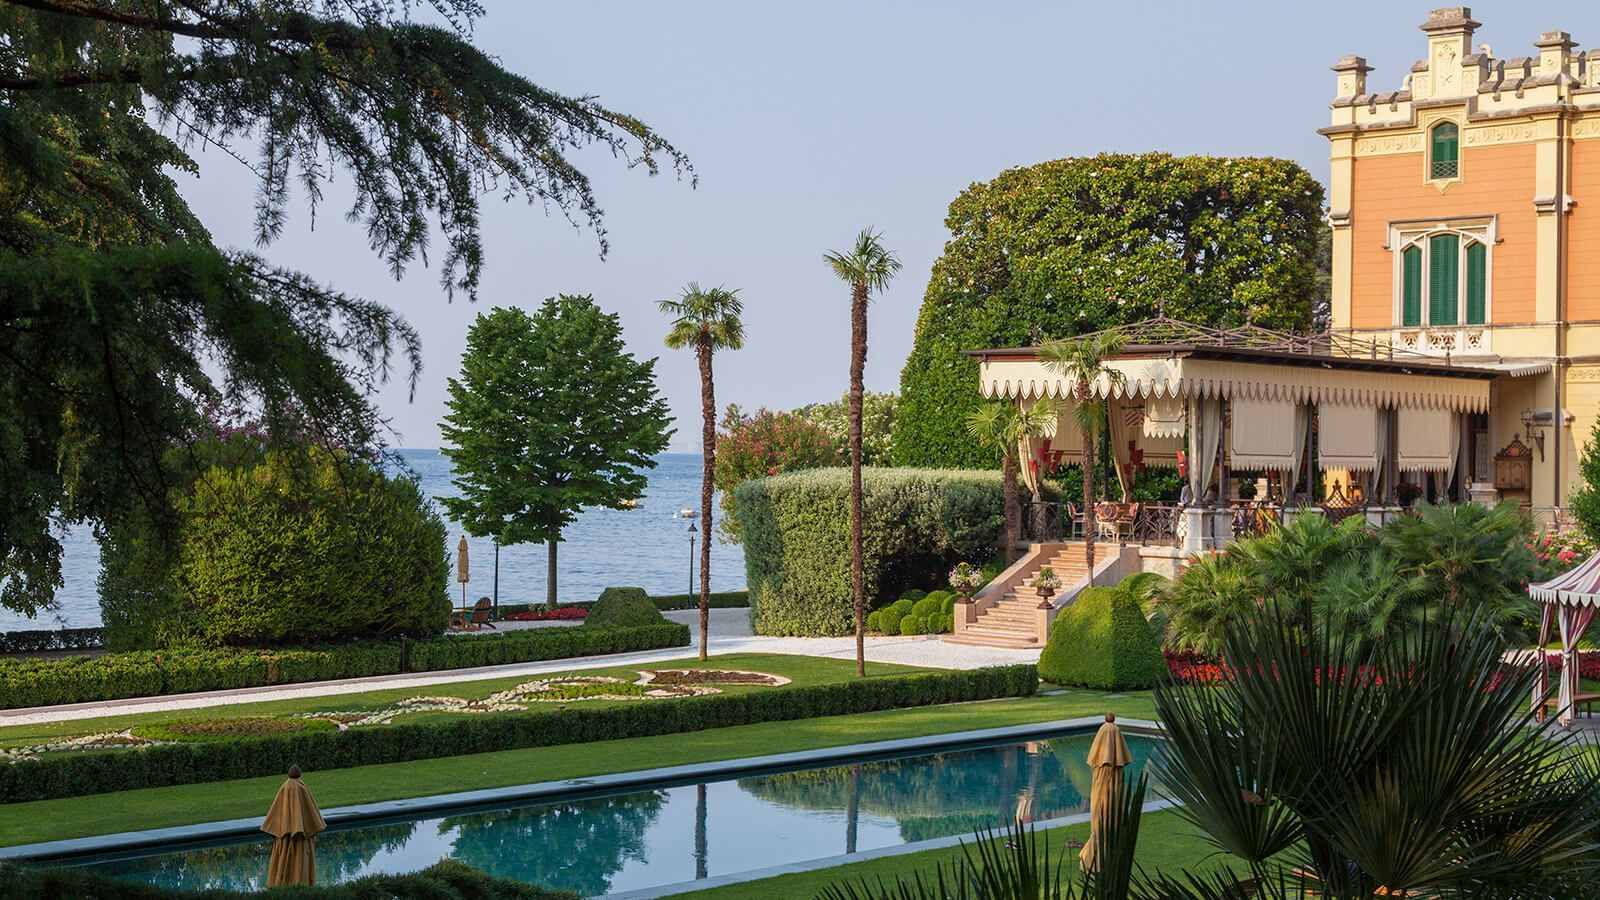 Grand hotel a Villa Feltrinelli - The Villa, the pool and lake sight